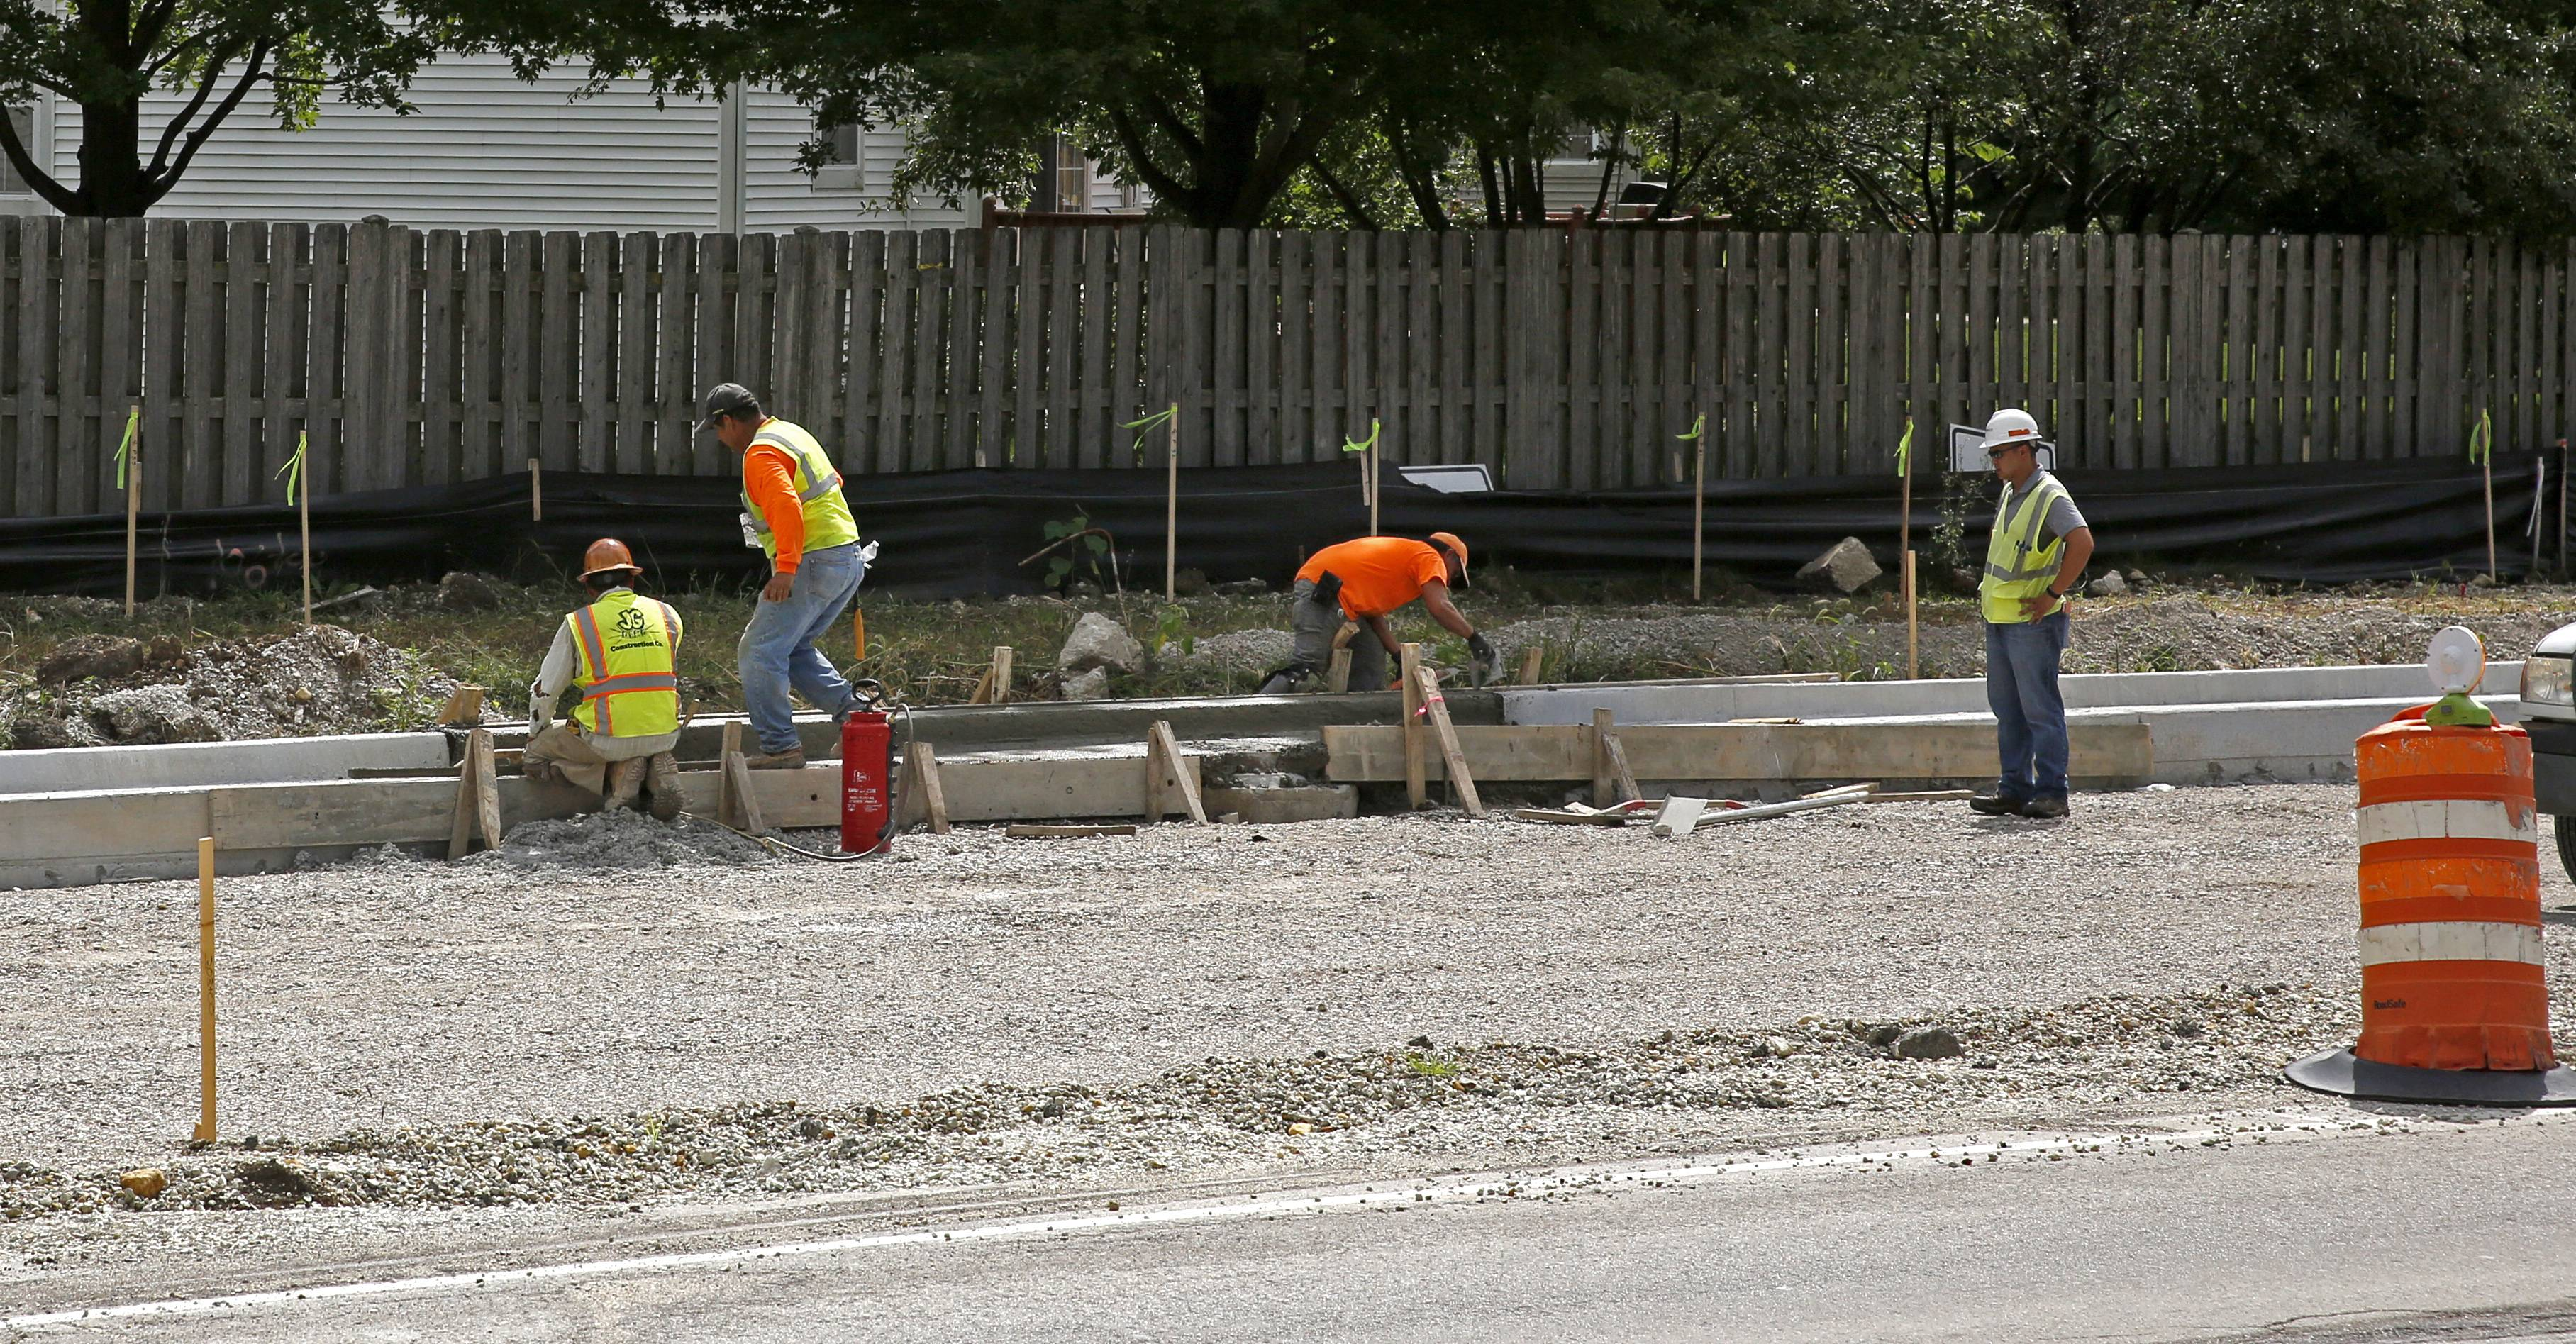 Construction crews build curbs Thursday as part of a $6.5 million project to add turn lanes at 95th Street and Plainfield/Naperville Road. The work has neighbors raising concerns about noise, dust and fumes.